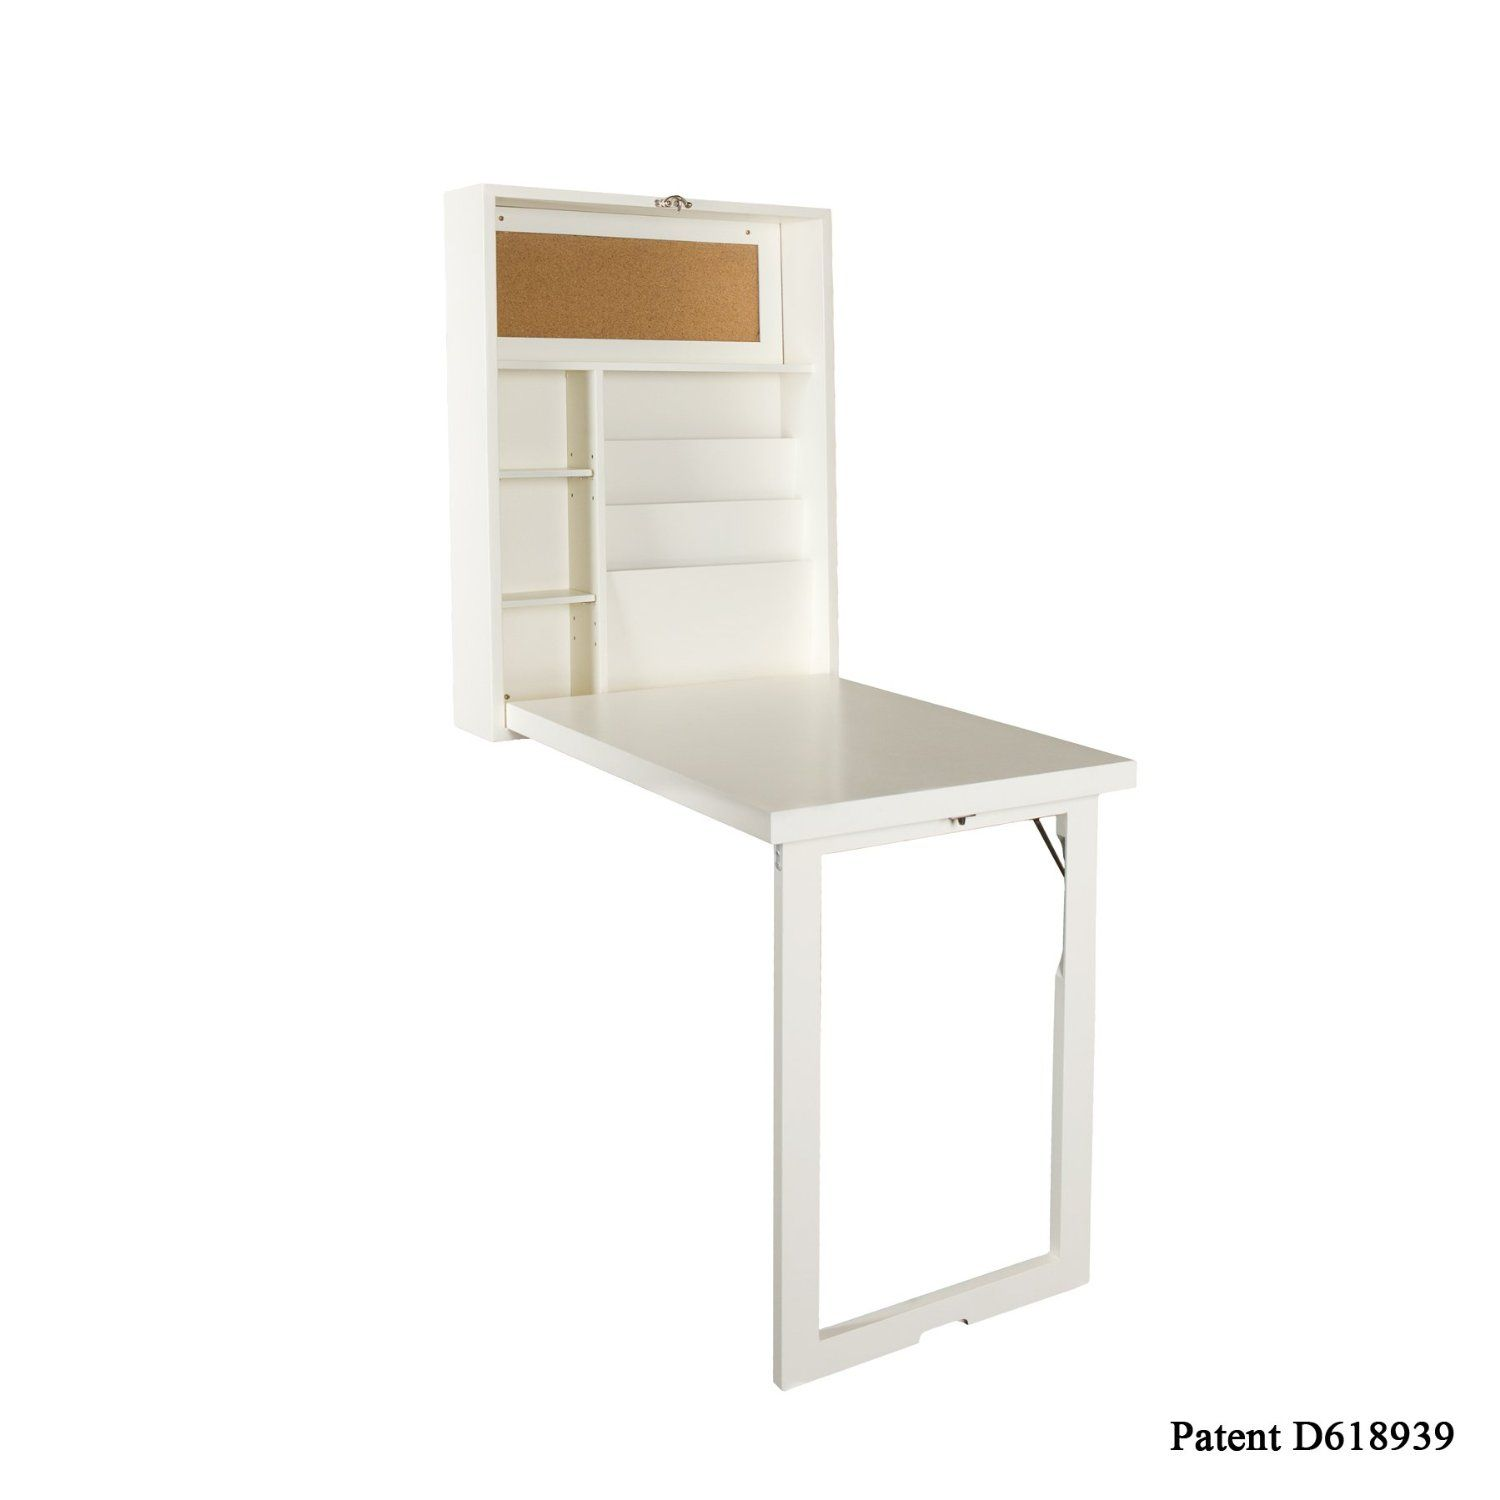 21 Best Wall Mounted Desk Designs For Small Homes   Wall mounted ...